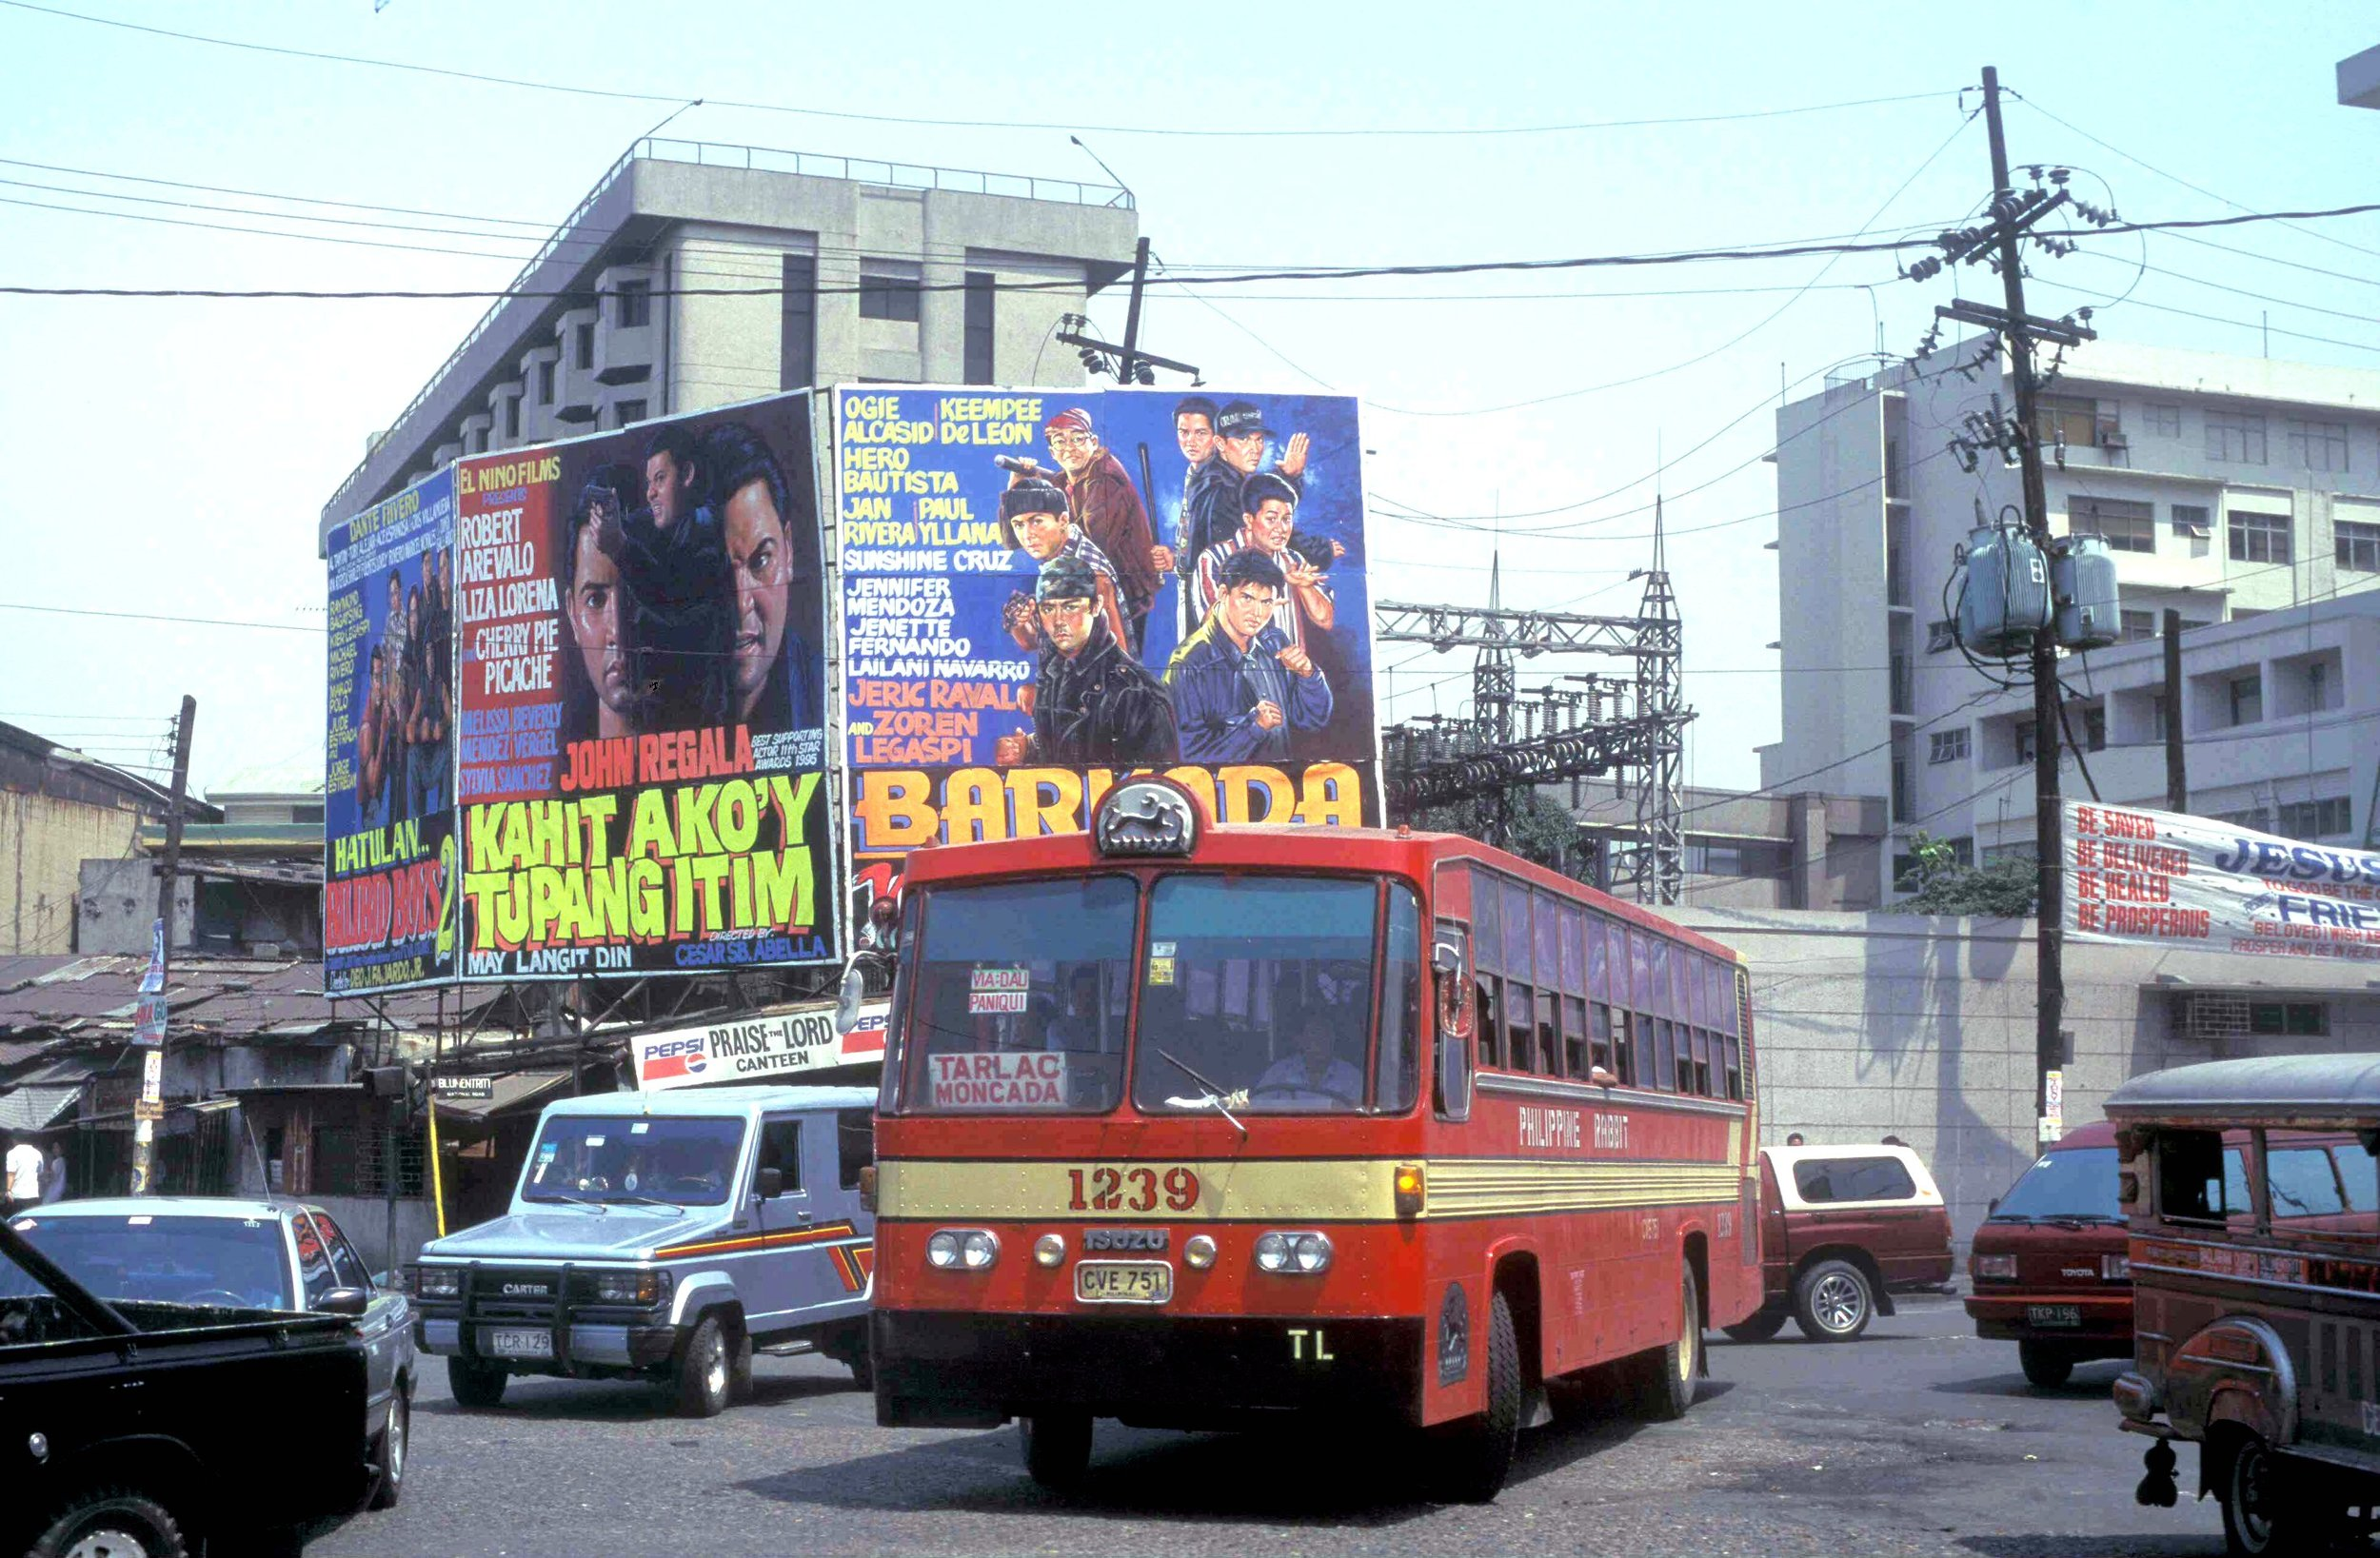 FIgure 5:Hand-painted movie posters for local commercial films, 1995. These were low-budget, quickly produced films made by outfits like El Nino films, known as local softcore studio.Source:  John_Ward-Philippine Rabbit Isuzu CVE-751 (fleet No 1239) A Bonifacio St, Santa Cruz, Manila, Philippines-1995.